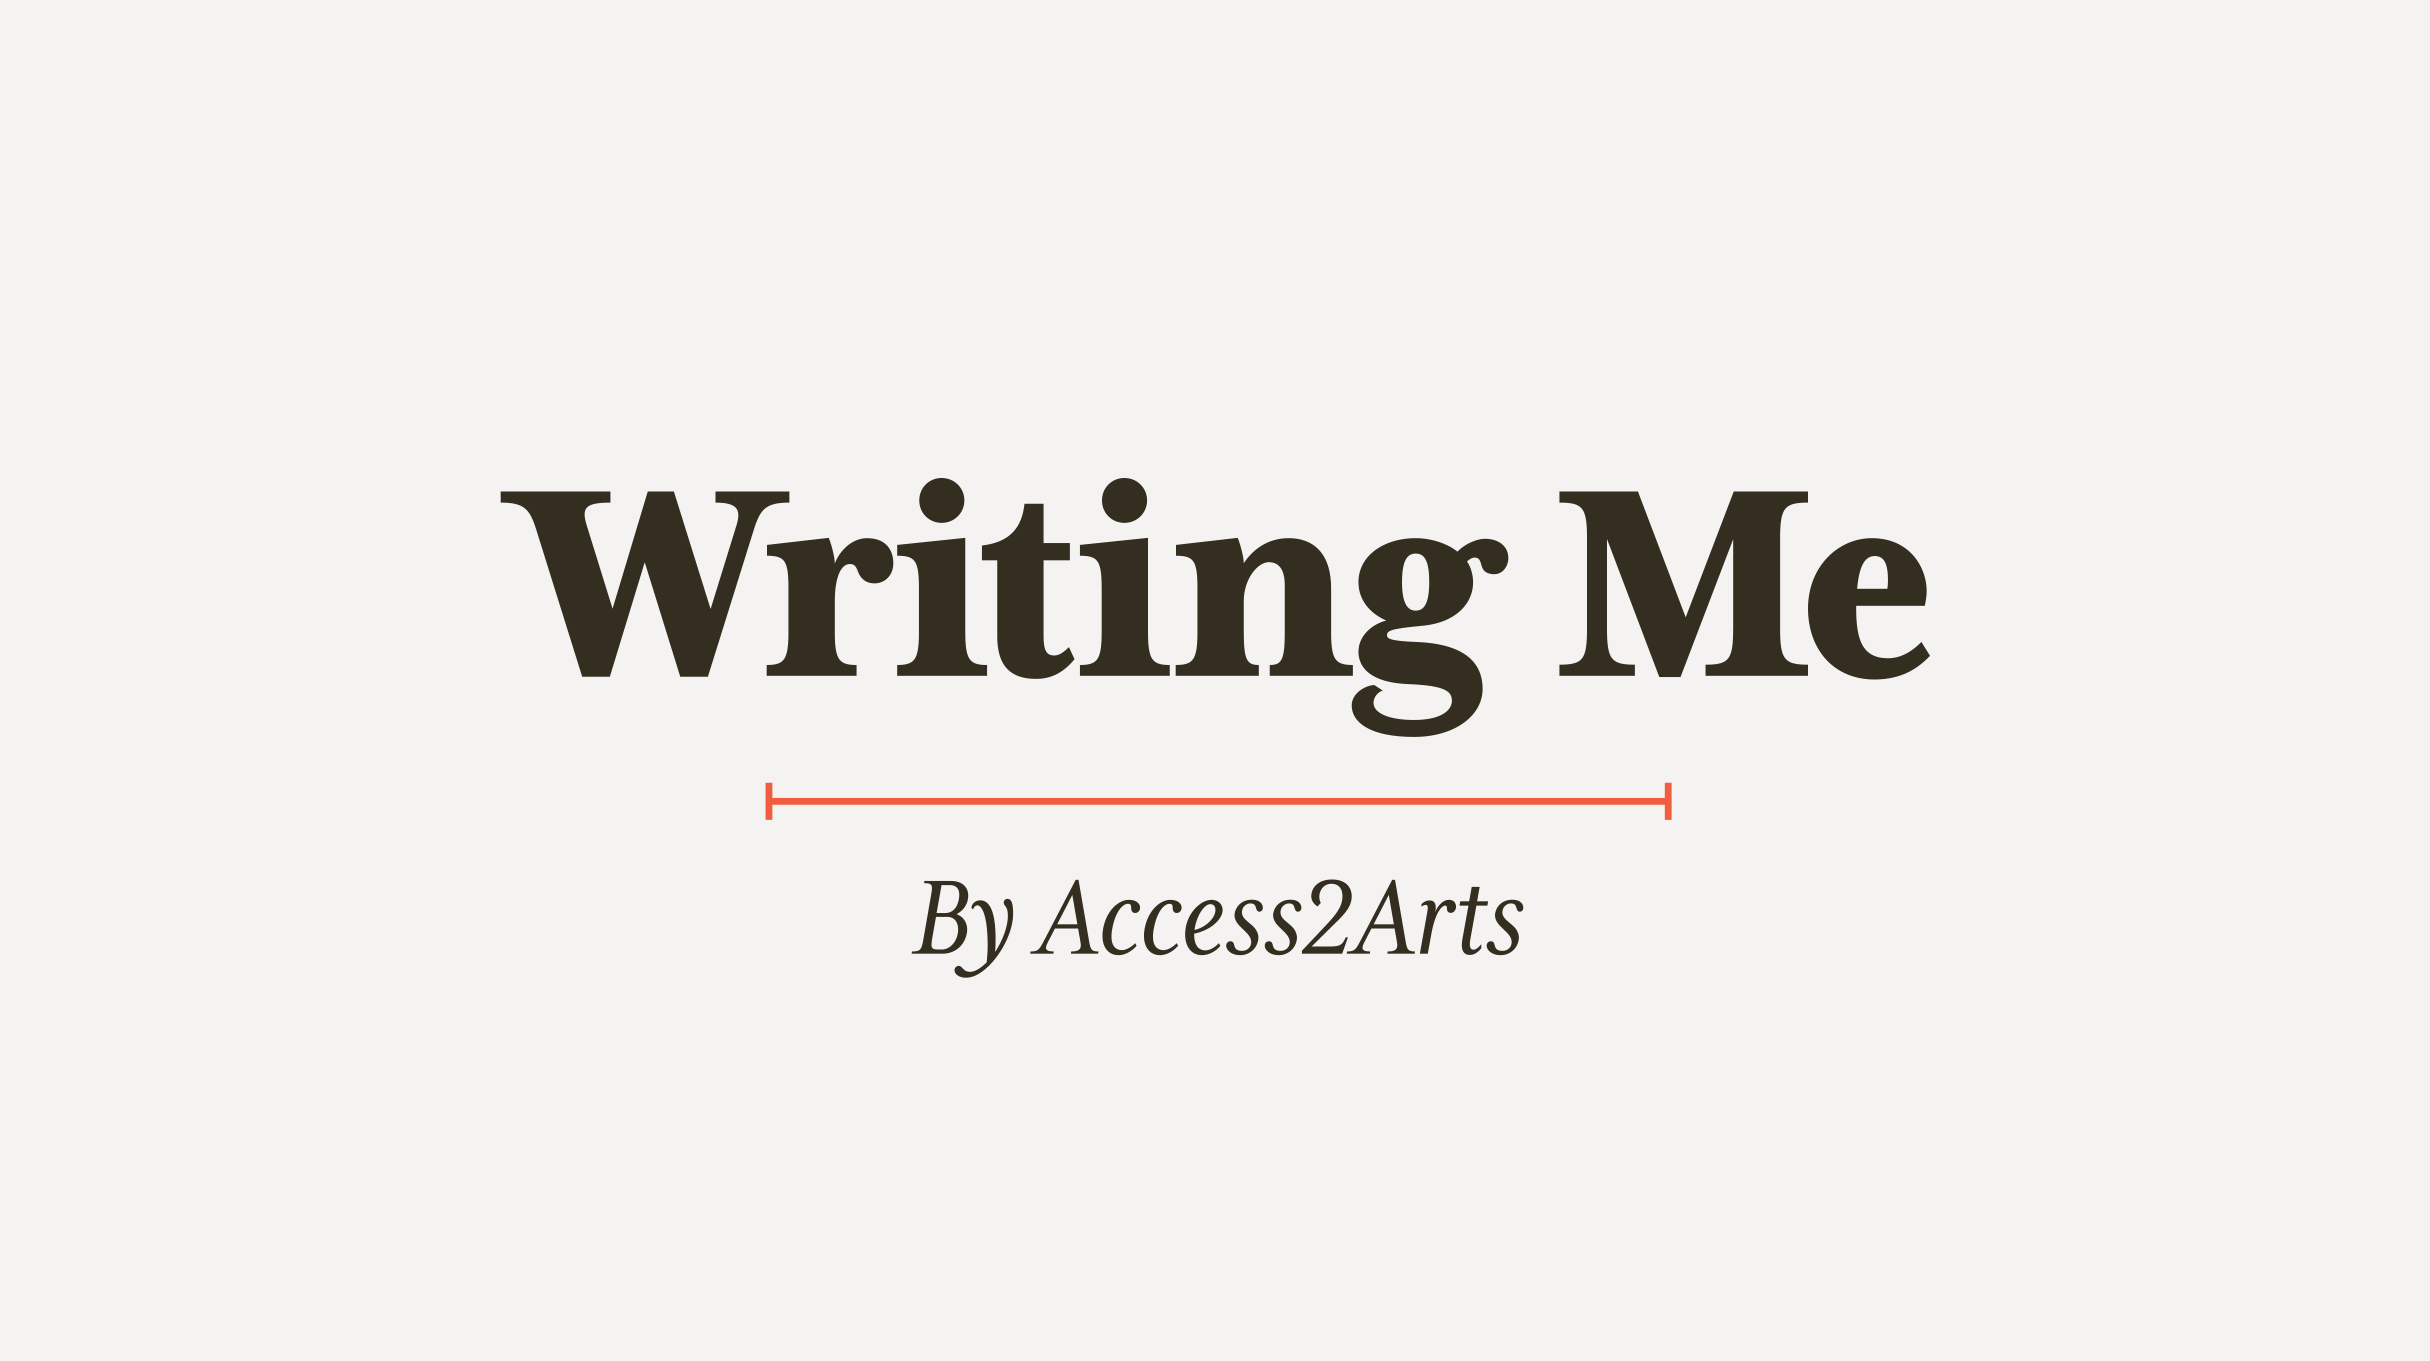 Logo: Writing Me, by Access2Arts